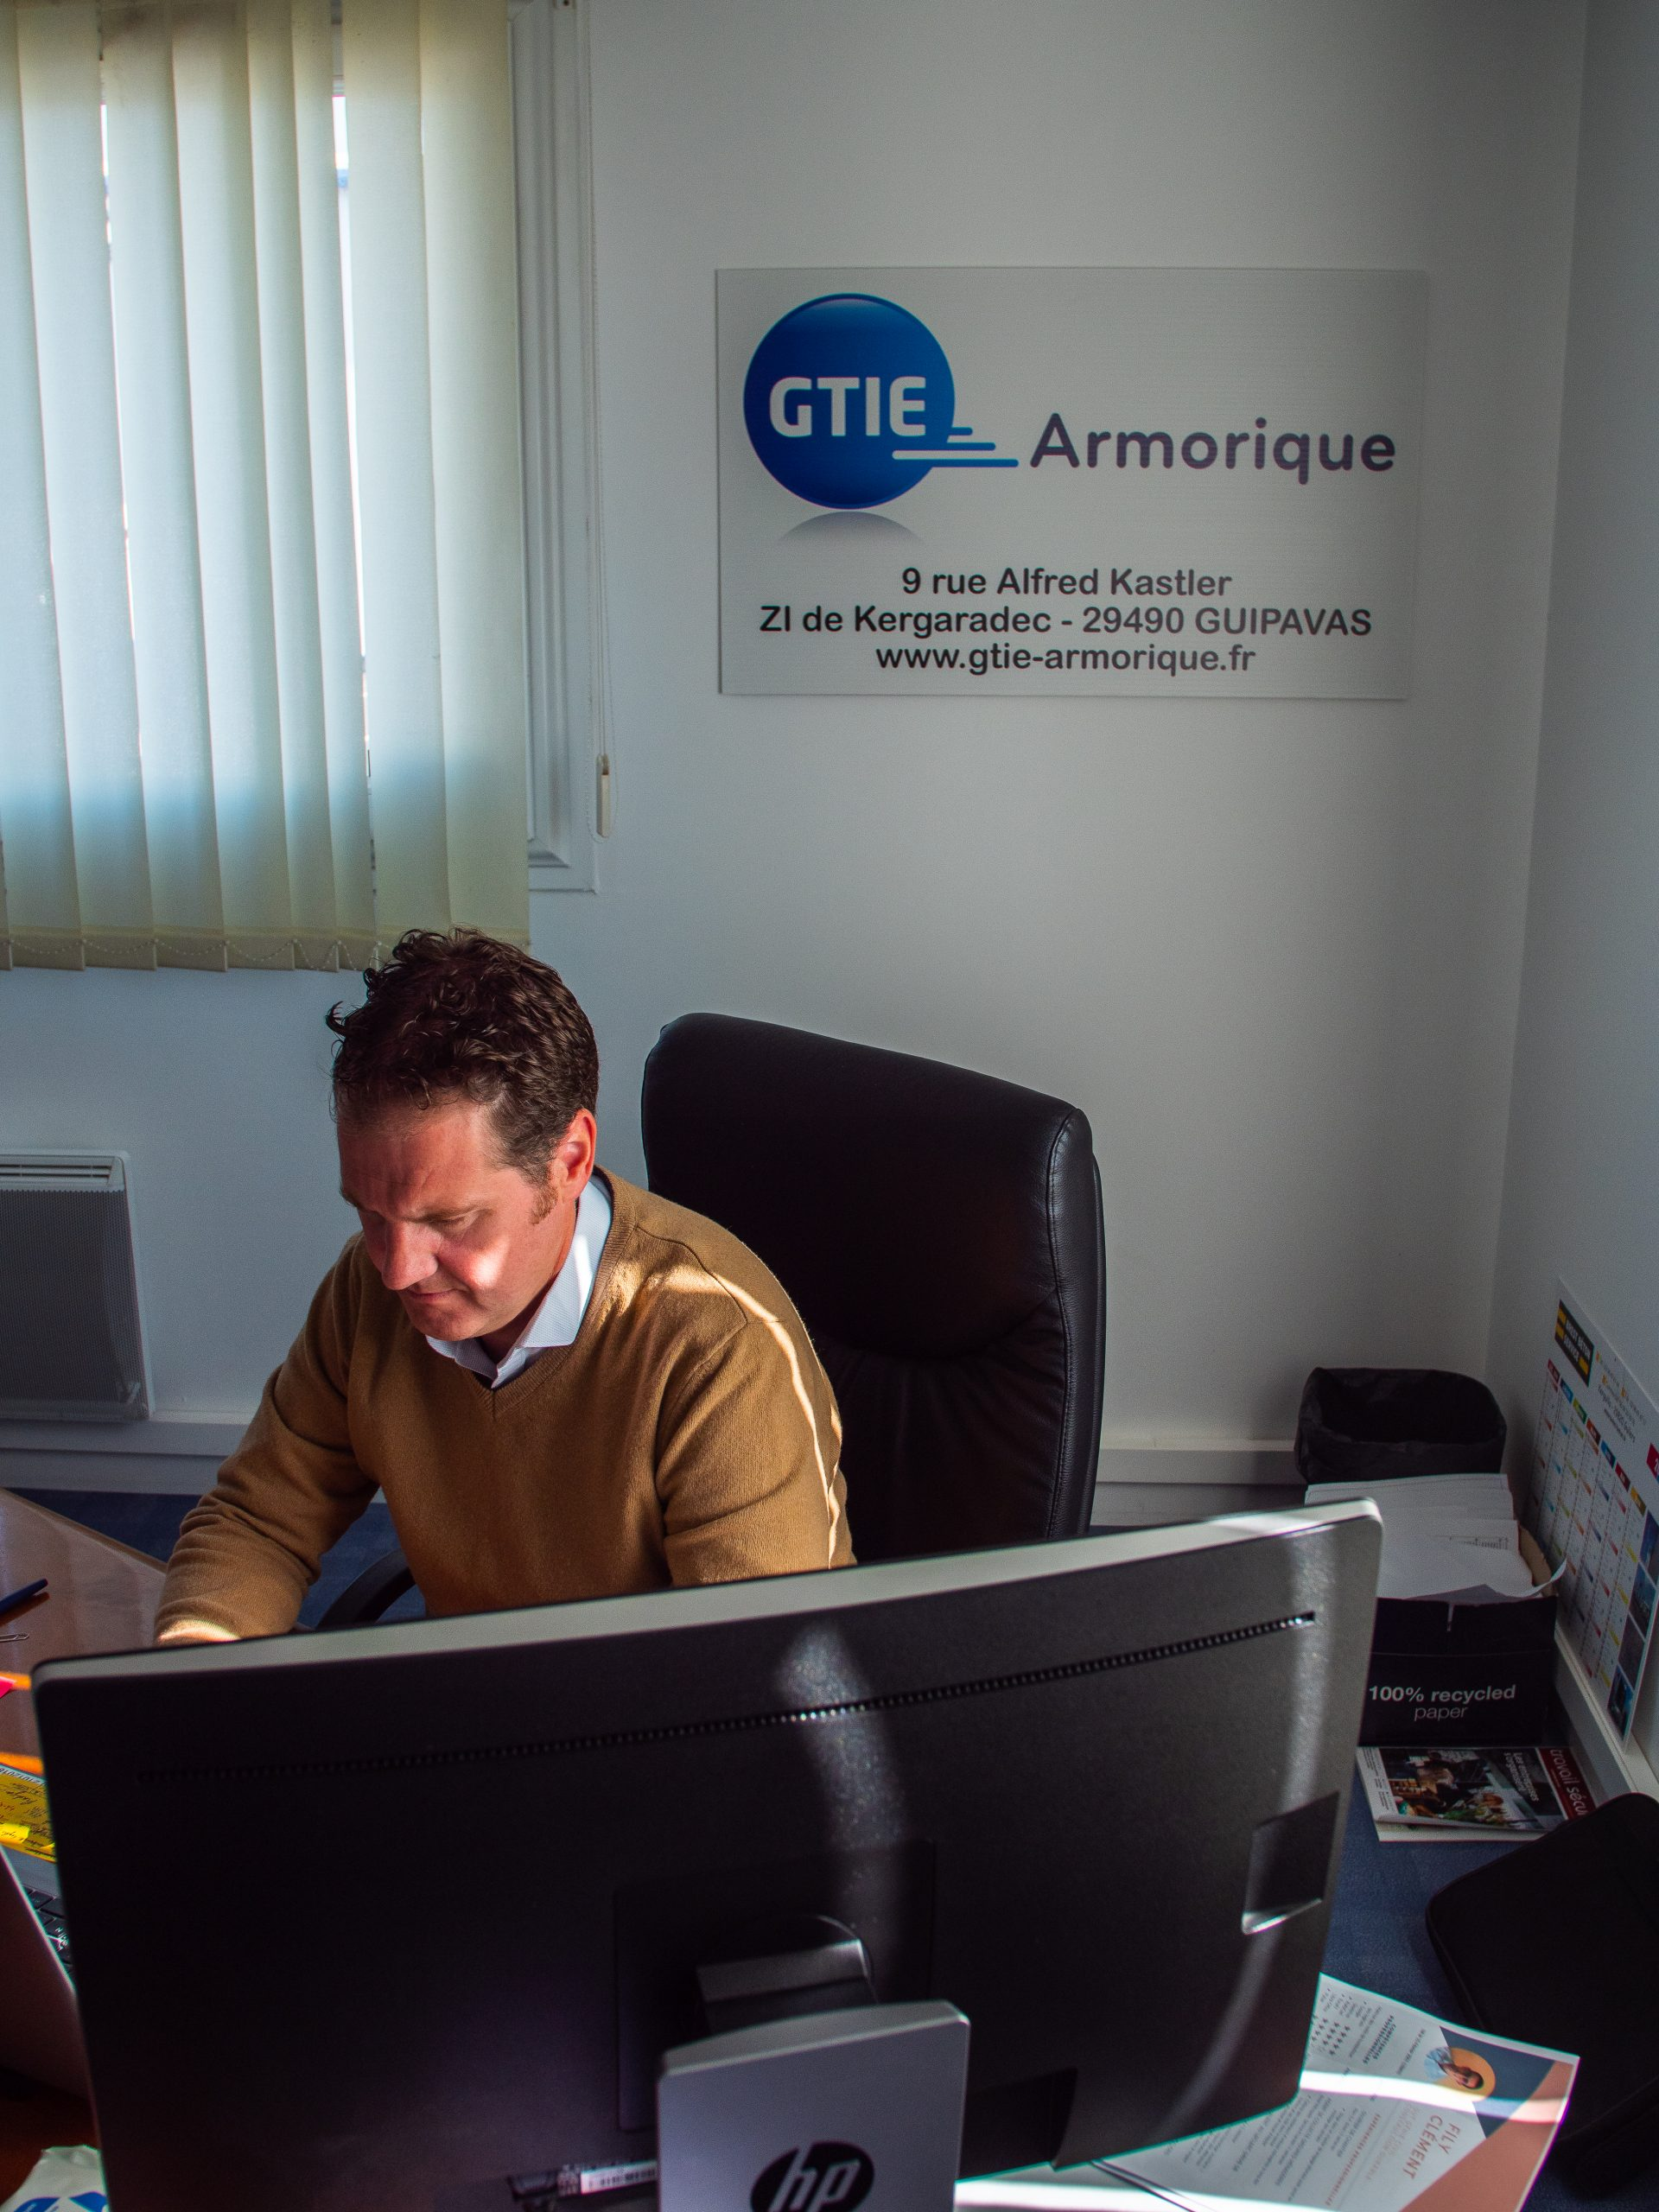 Technicien d'Affaires GTIE Armorique